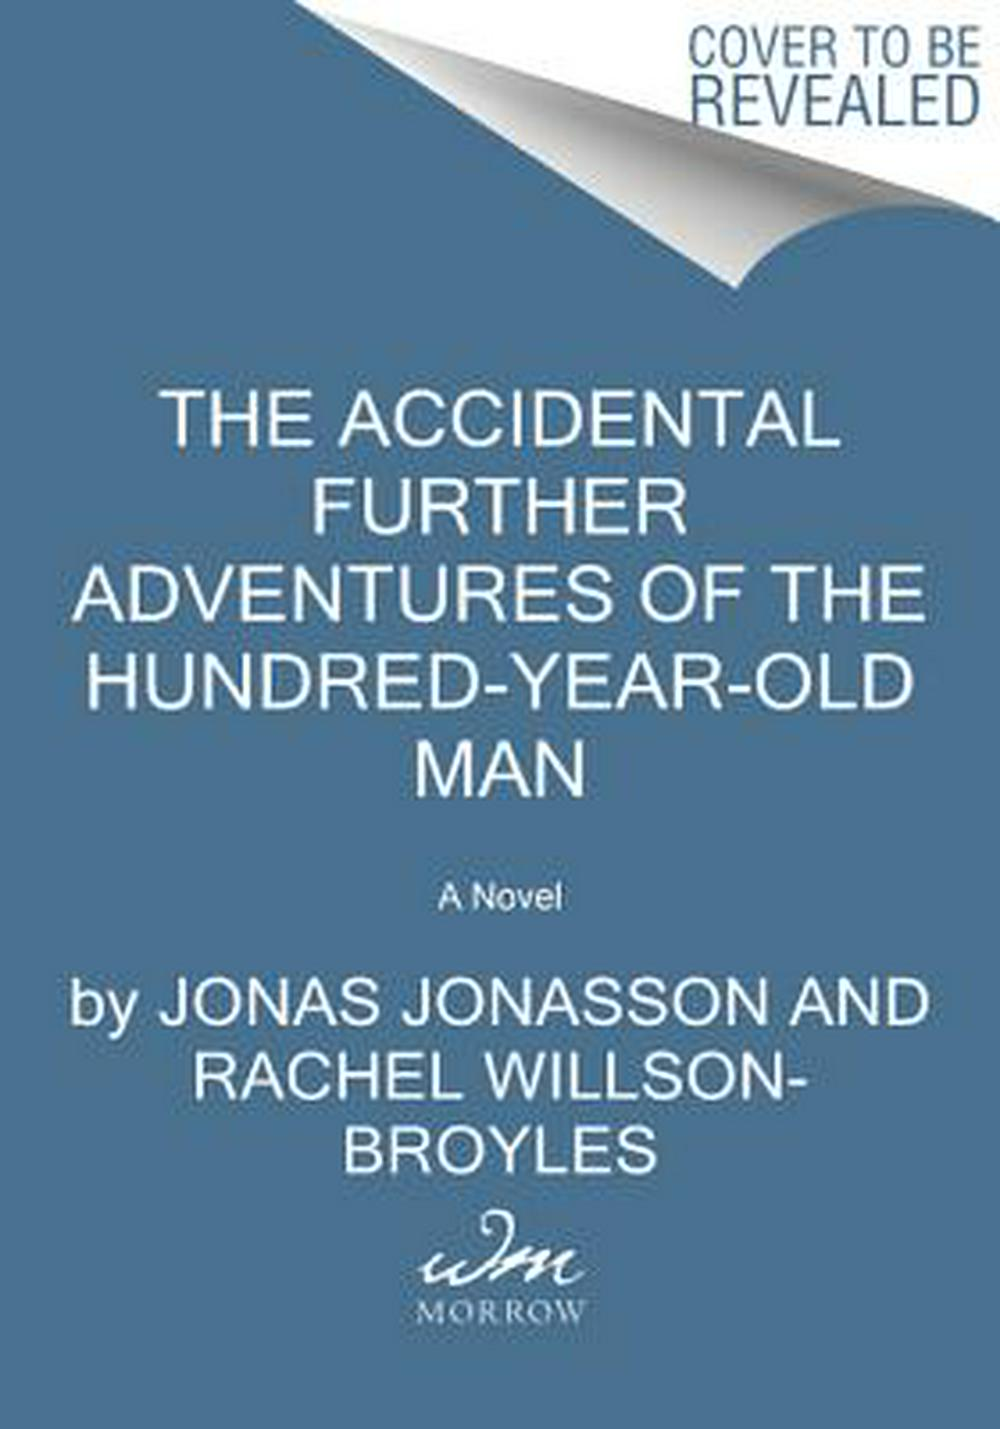 The Accidental Further Adventures of the Hundred-year-old Man by Jonas Jonasson, ISBN: 9780062846136